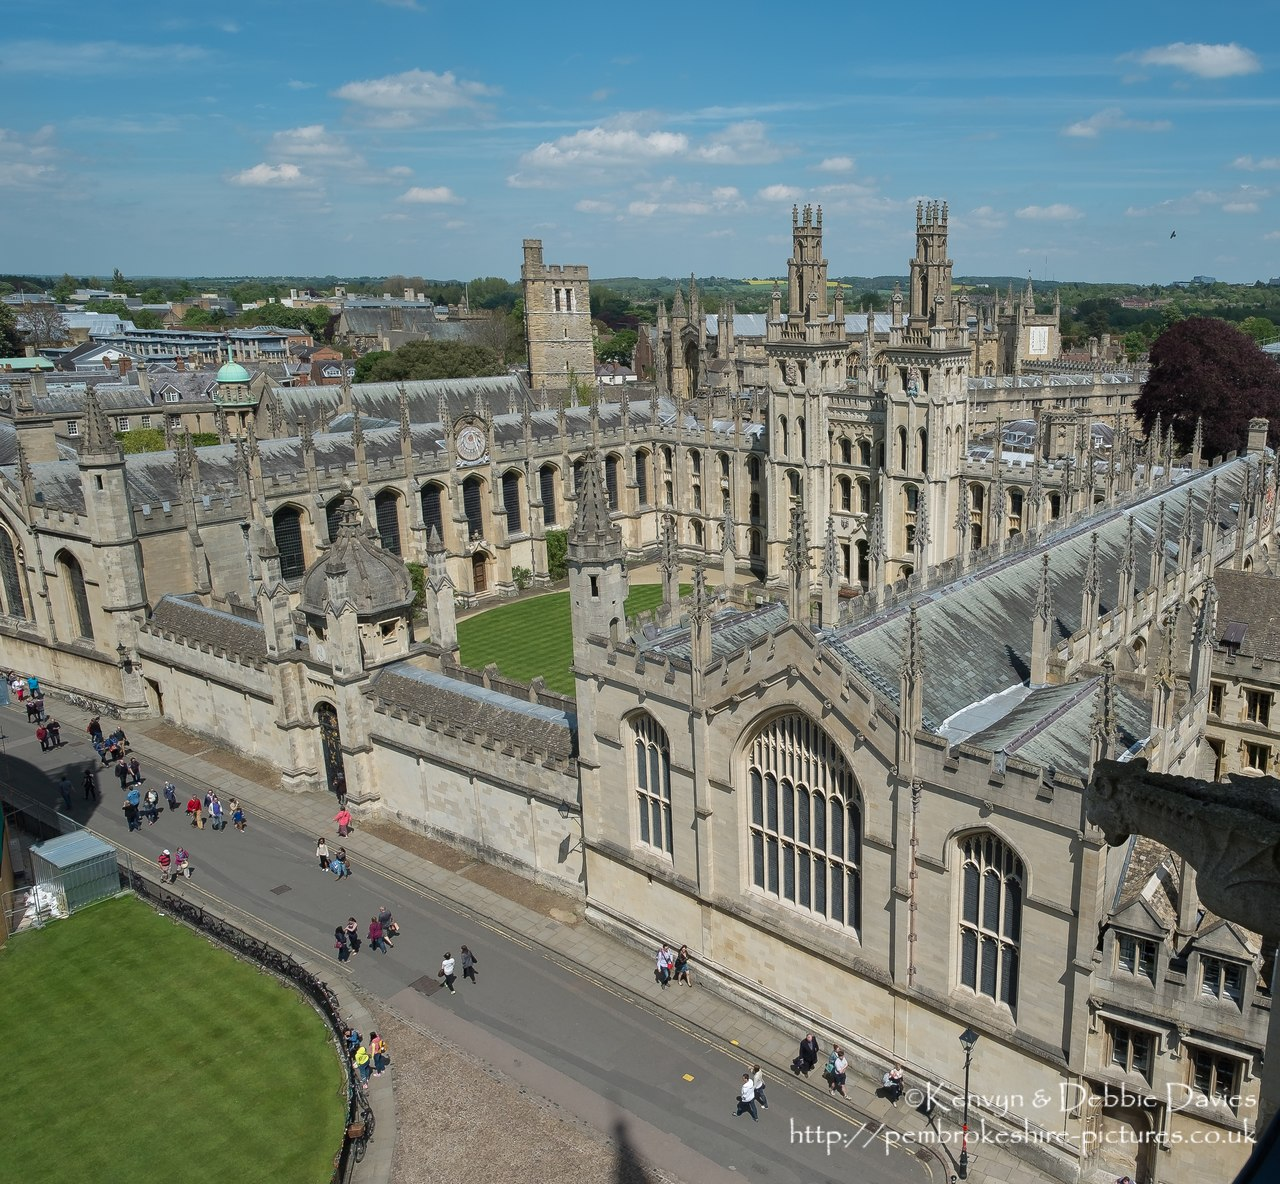 View of All Souls College, Oxford from the Church of St Mary the Virgin.